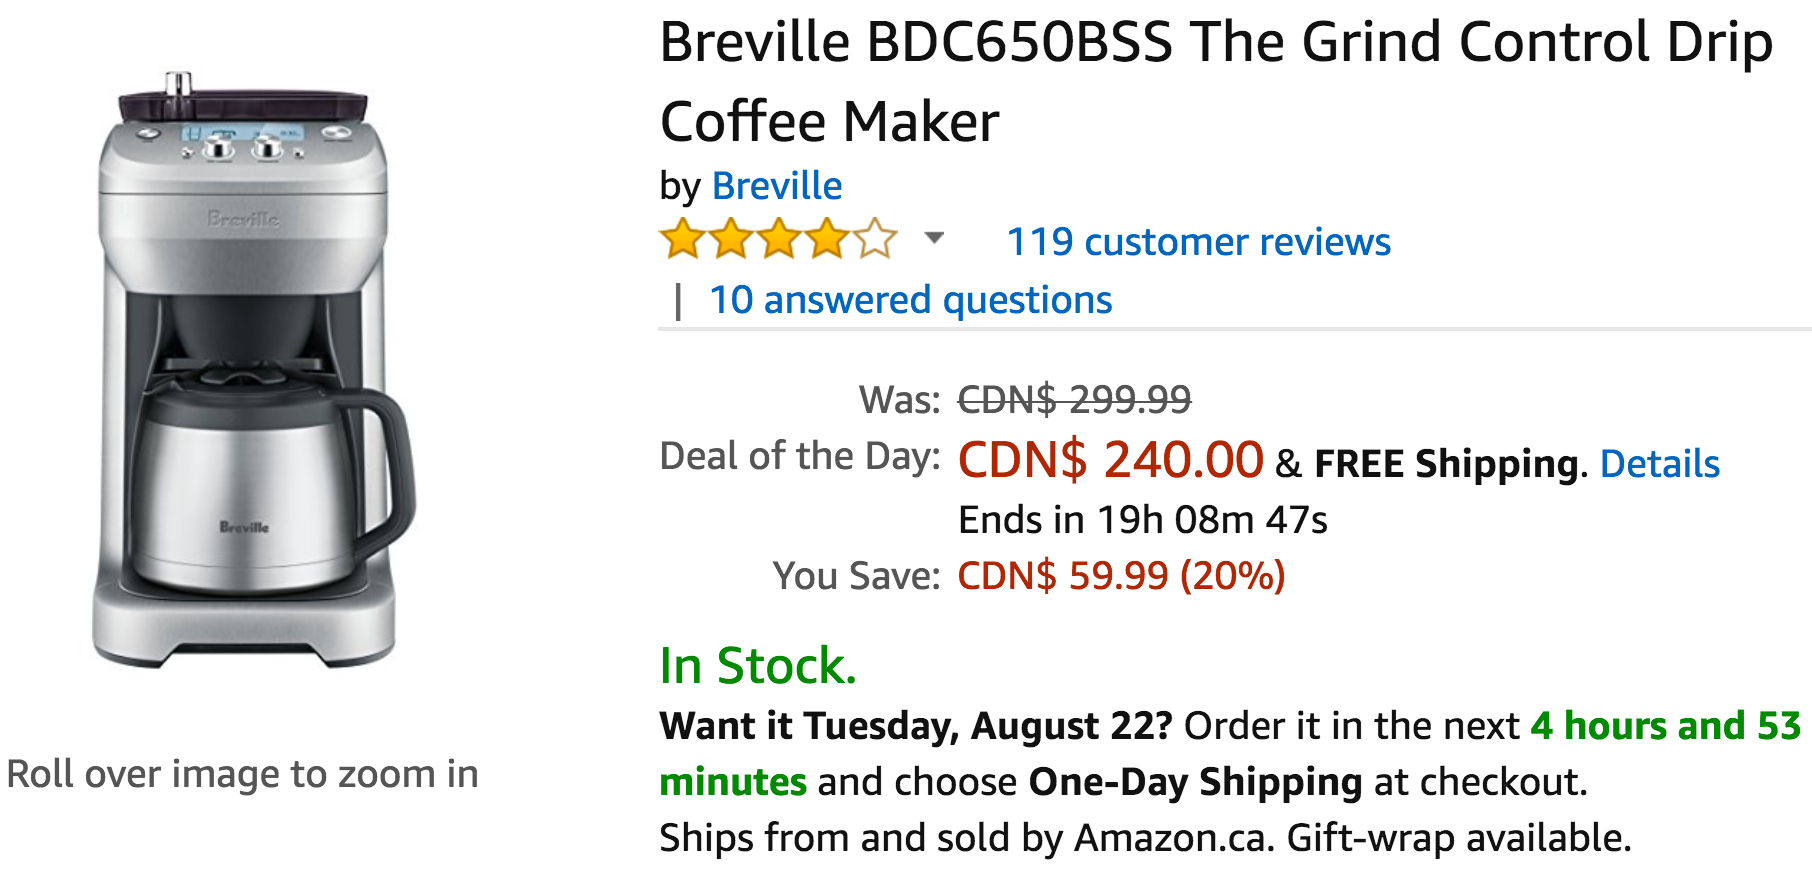 Breville Coffee Maker Coupons : Amazon Canada Deals Of The Day: Save 33% on KRUPS Electric Spice and Coffee Grinder & 20% on ...